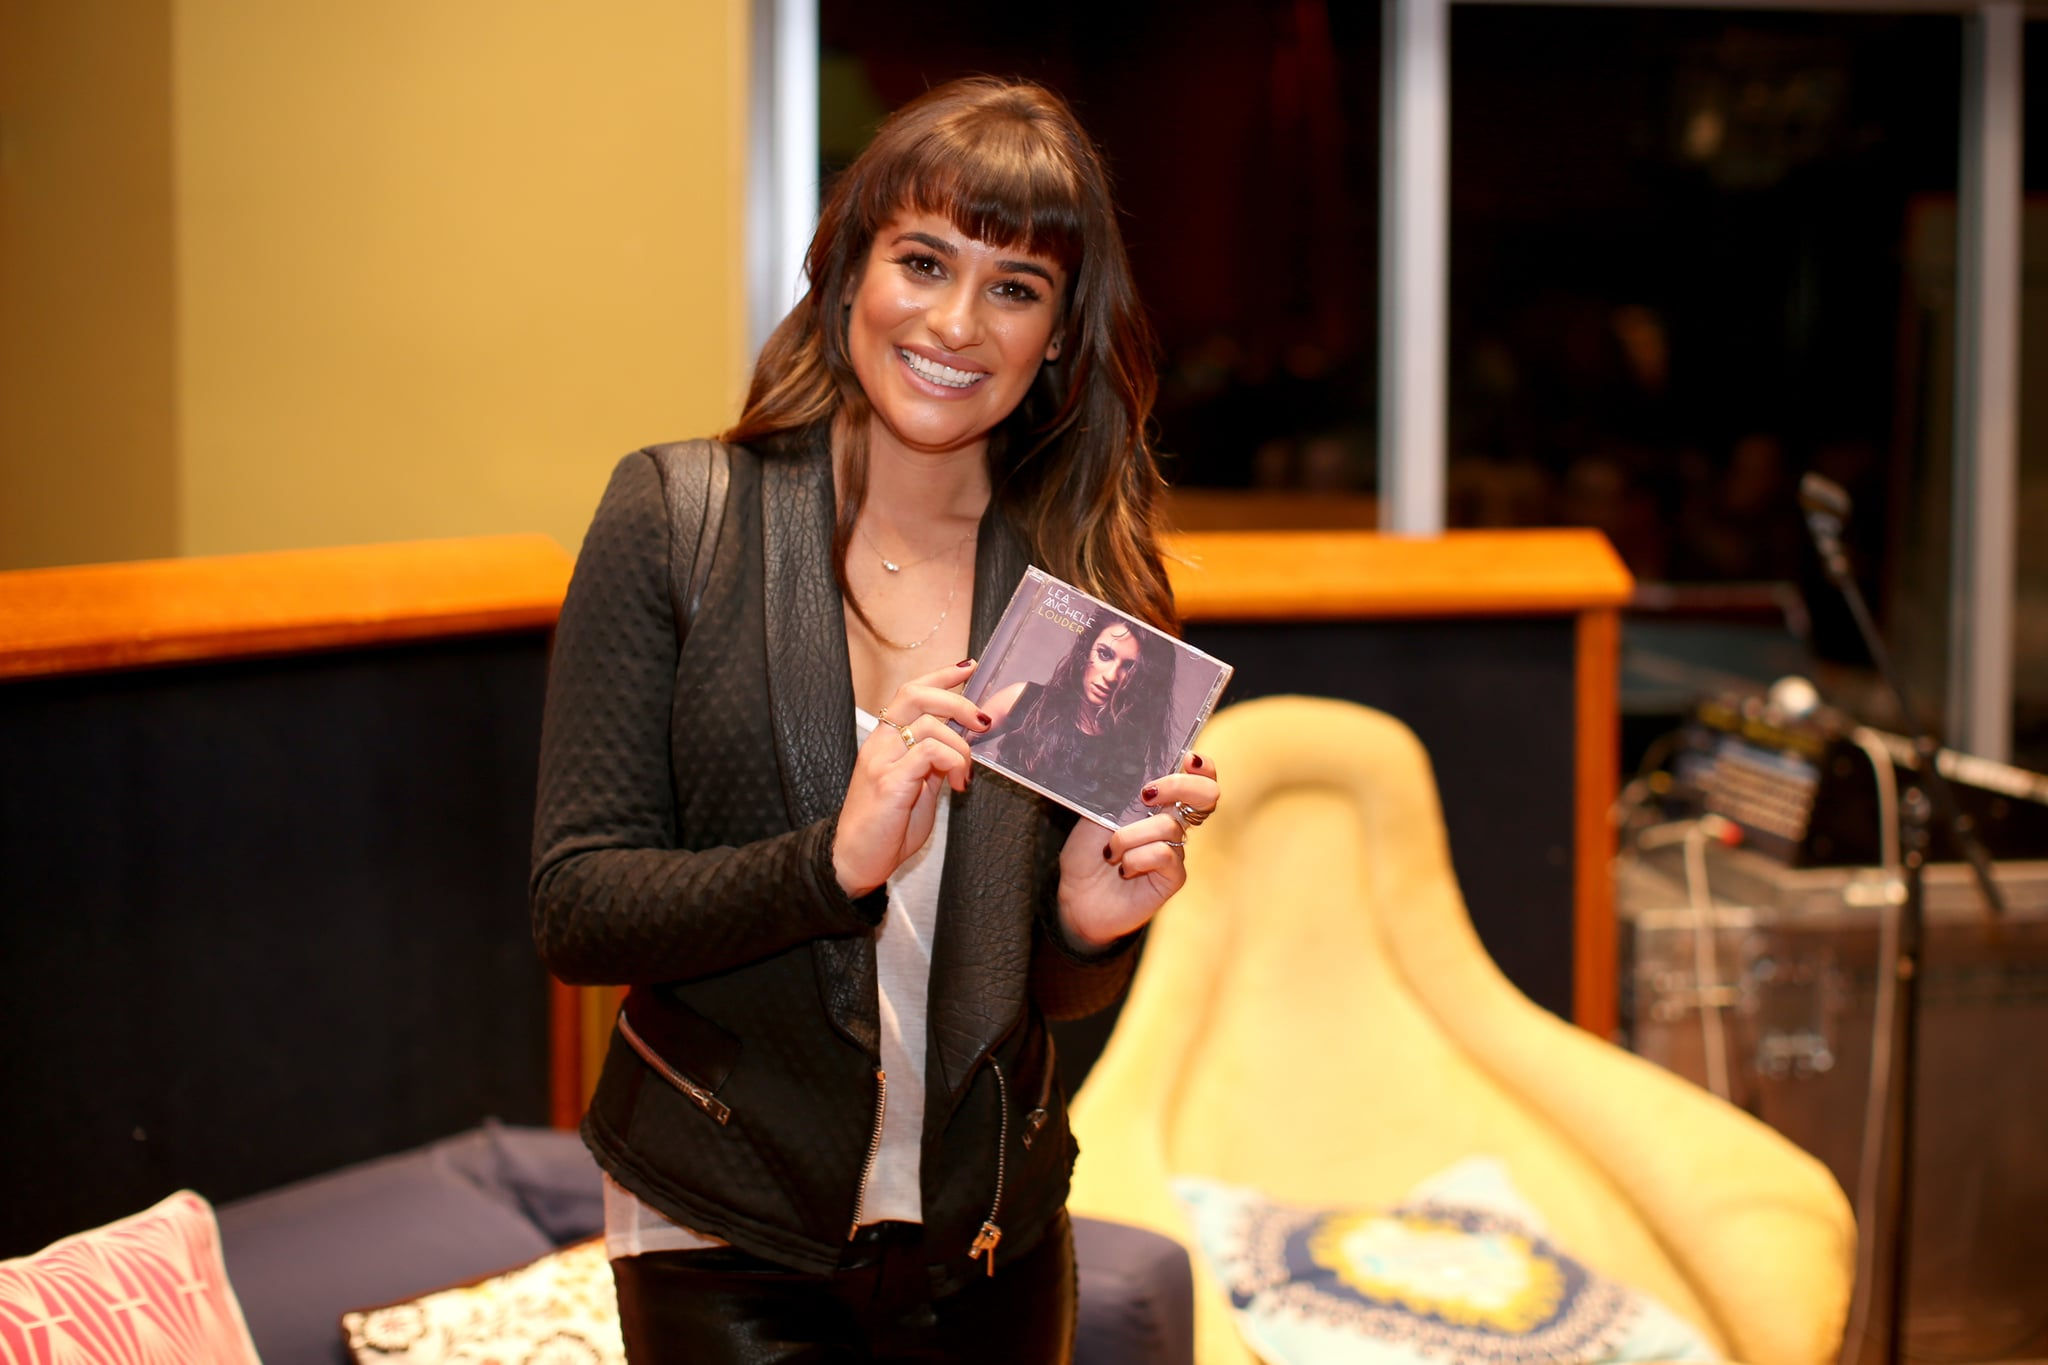 The singer held up her album cover.